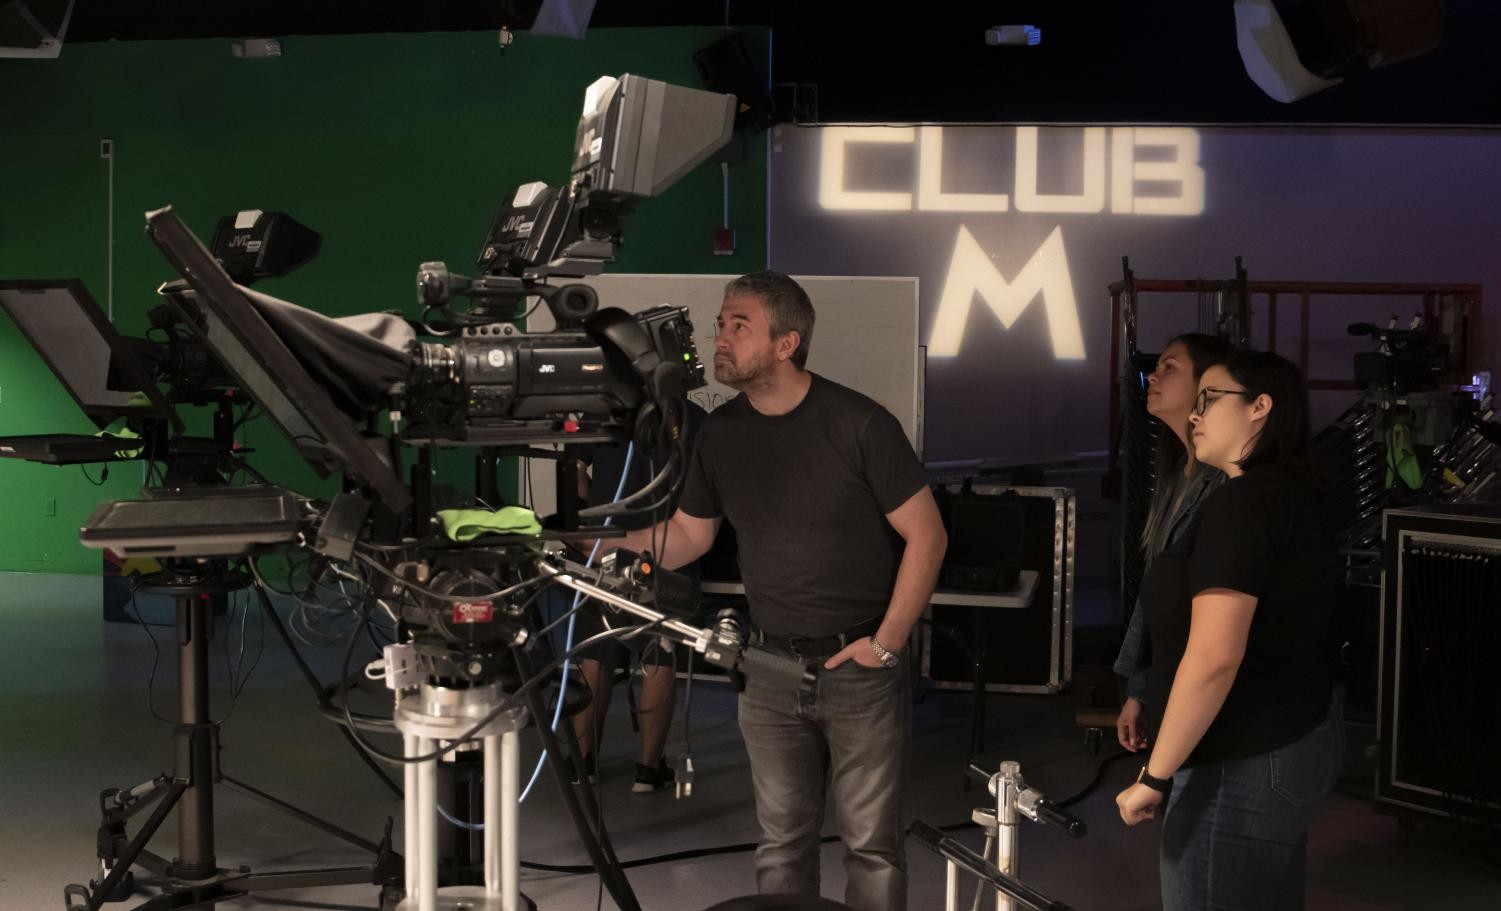 Professor Michael Grimes (left), Club M producer Savanna Cory (middle), and Moorpark College FTVM major Eloise Schmitt (right) set up for a practice run-through for Club M on Tuesday, Nov. 19. Photo credit: Dominic D'Amico